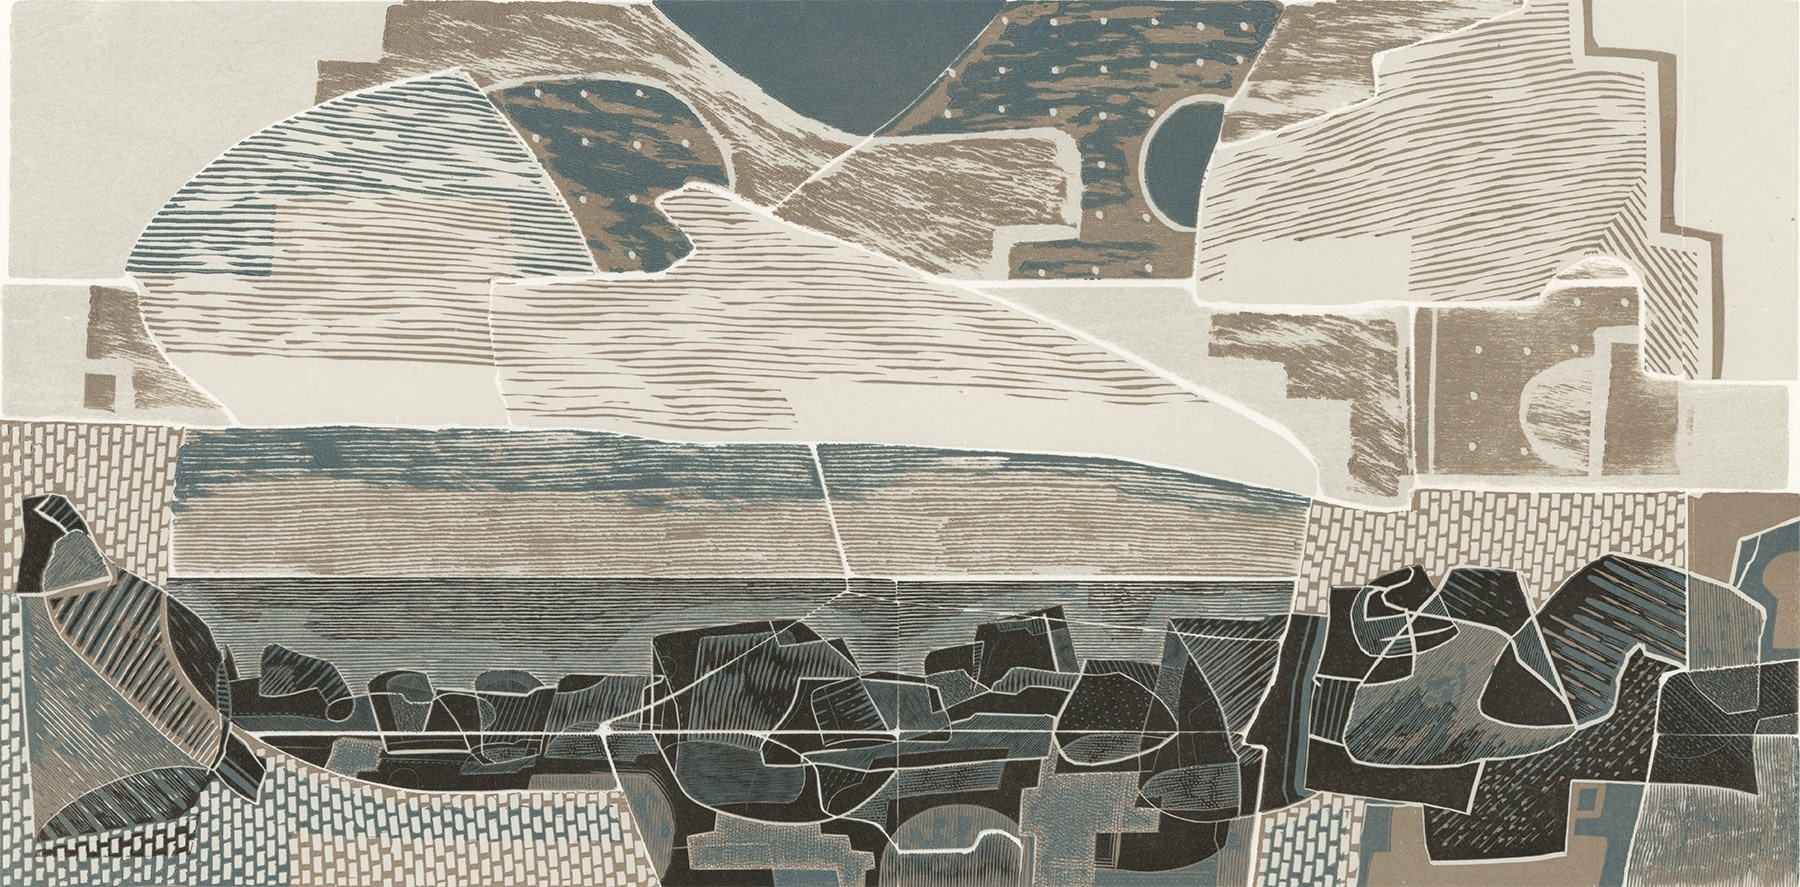 "<span class=""link fancybox-details-link""><a href=""/exhibitions/17/works/image_standalone633/"">View Detail Page</a></span><p><strong>Neil Bousfield</strong></p><p>Land & Sea, Past & Present I</p><p>linocut, wood engraving</p><p>40 x 25cm</p><p>£550 framed</p><p>£450 unframed</p>"